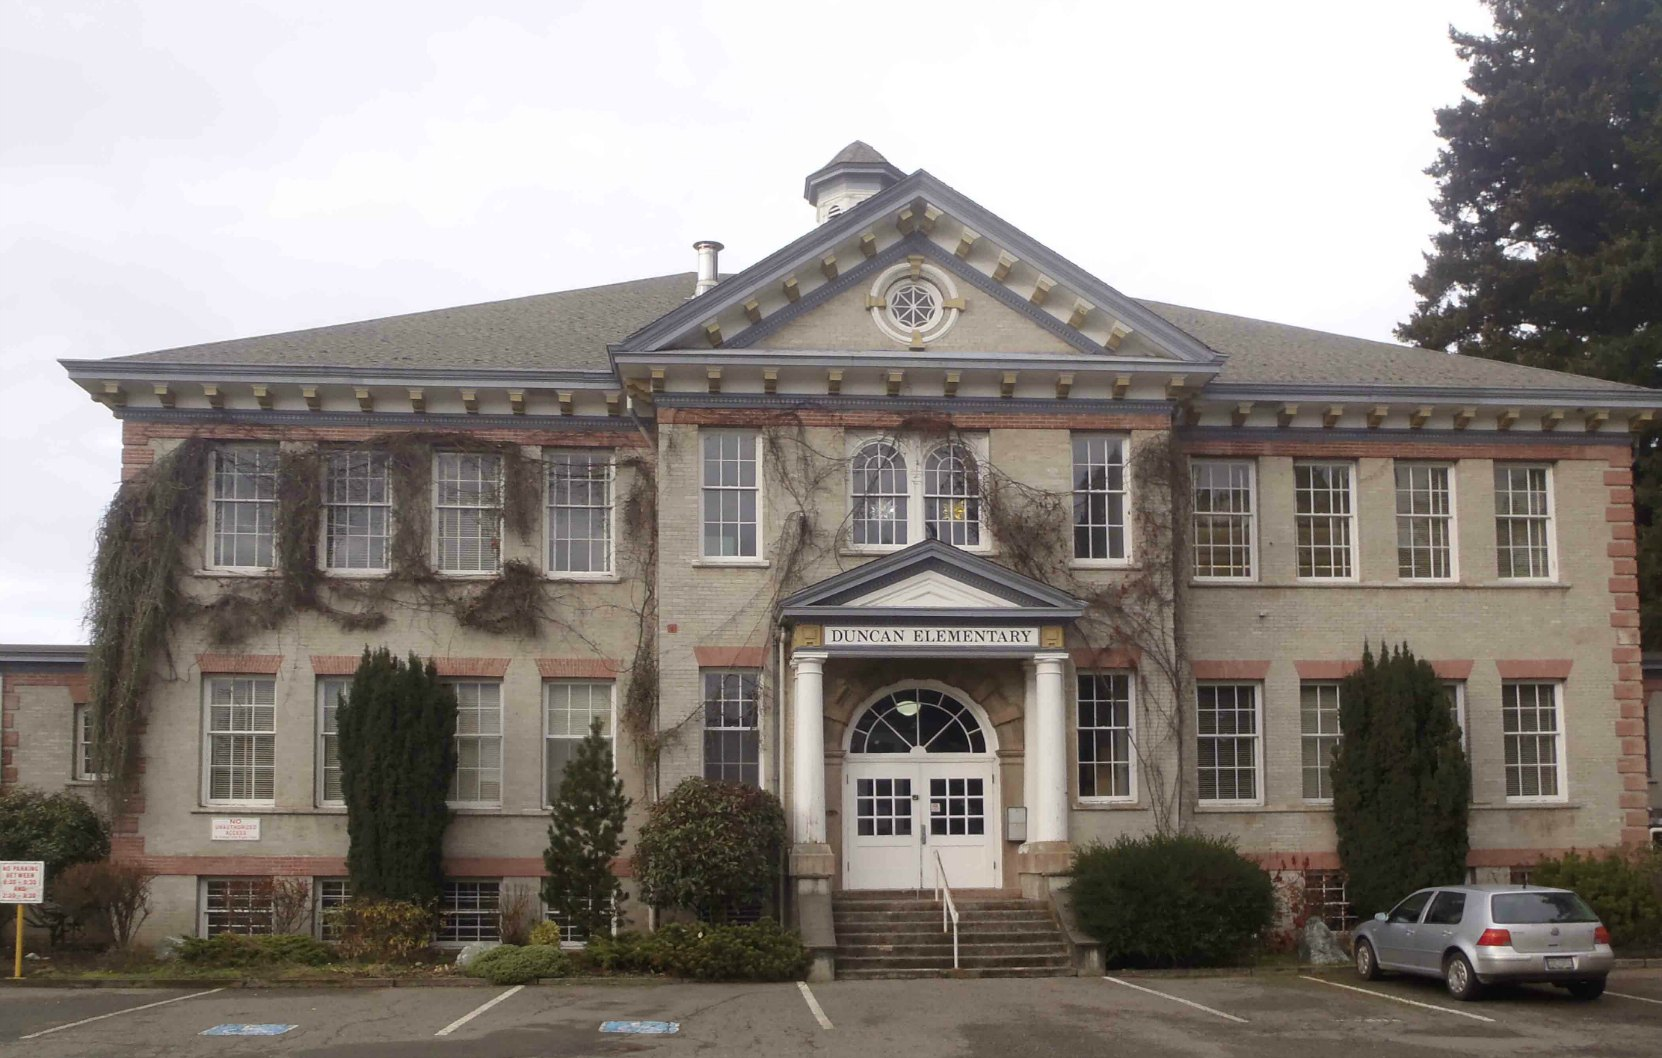 Duncan Elementary School, built in 1913. The architect who designed it and the contractor who built it were both Freemasons.